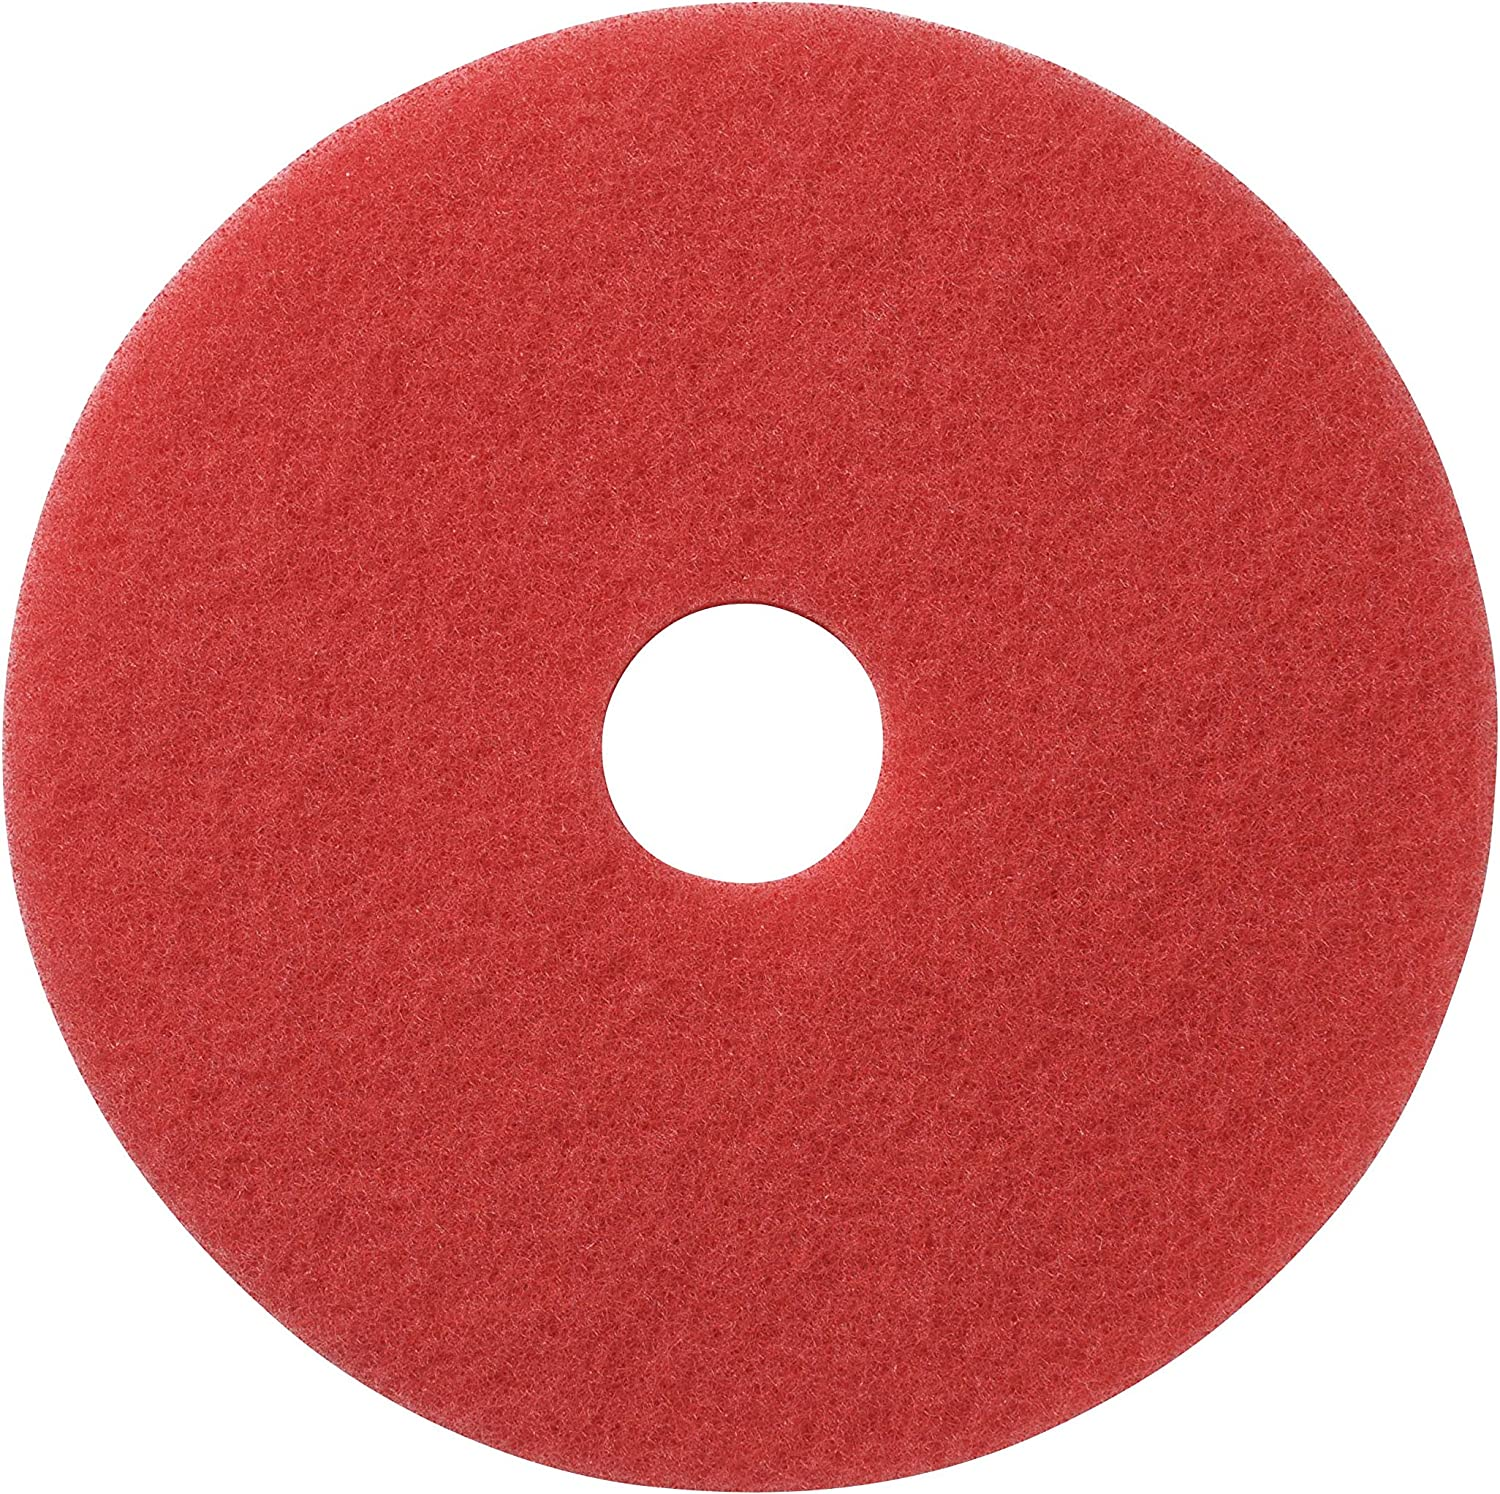 "Glit / Microtron 404420 Daily Cleaning and Buffing Pad, 20"", Red (Pack of 5)"